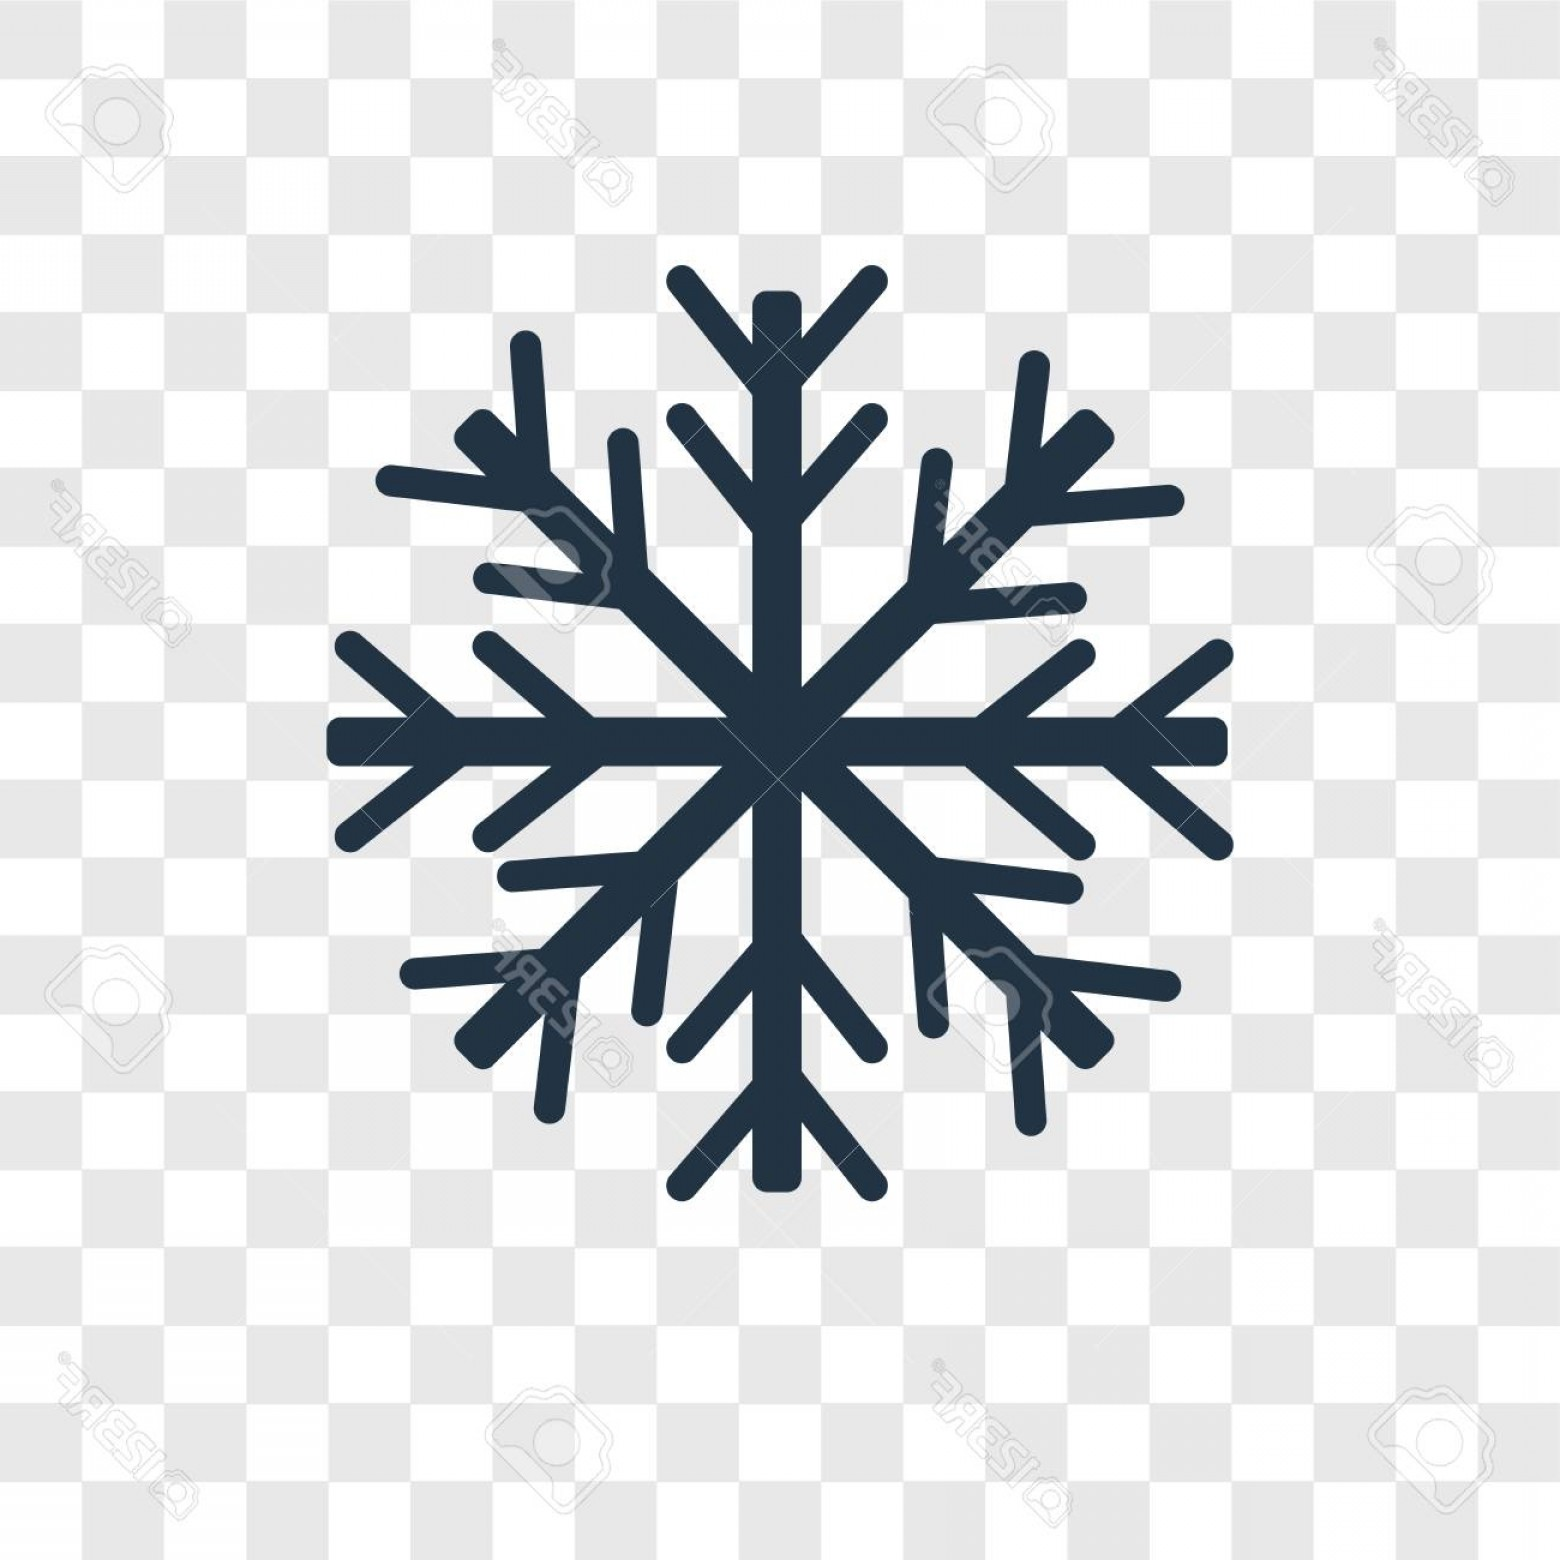 White Snowflake Vector Art: Photostock Vector Snowflake Vector Icon Isolated On Transparent Background Snowflake Transparency Logo Concept